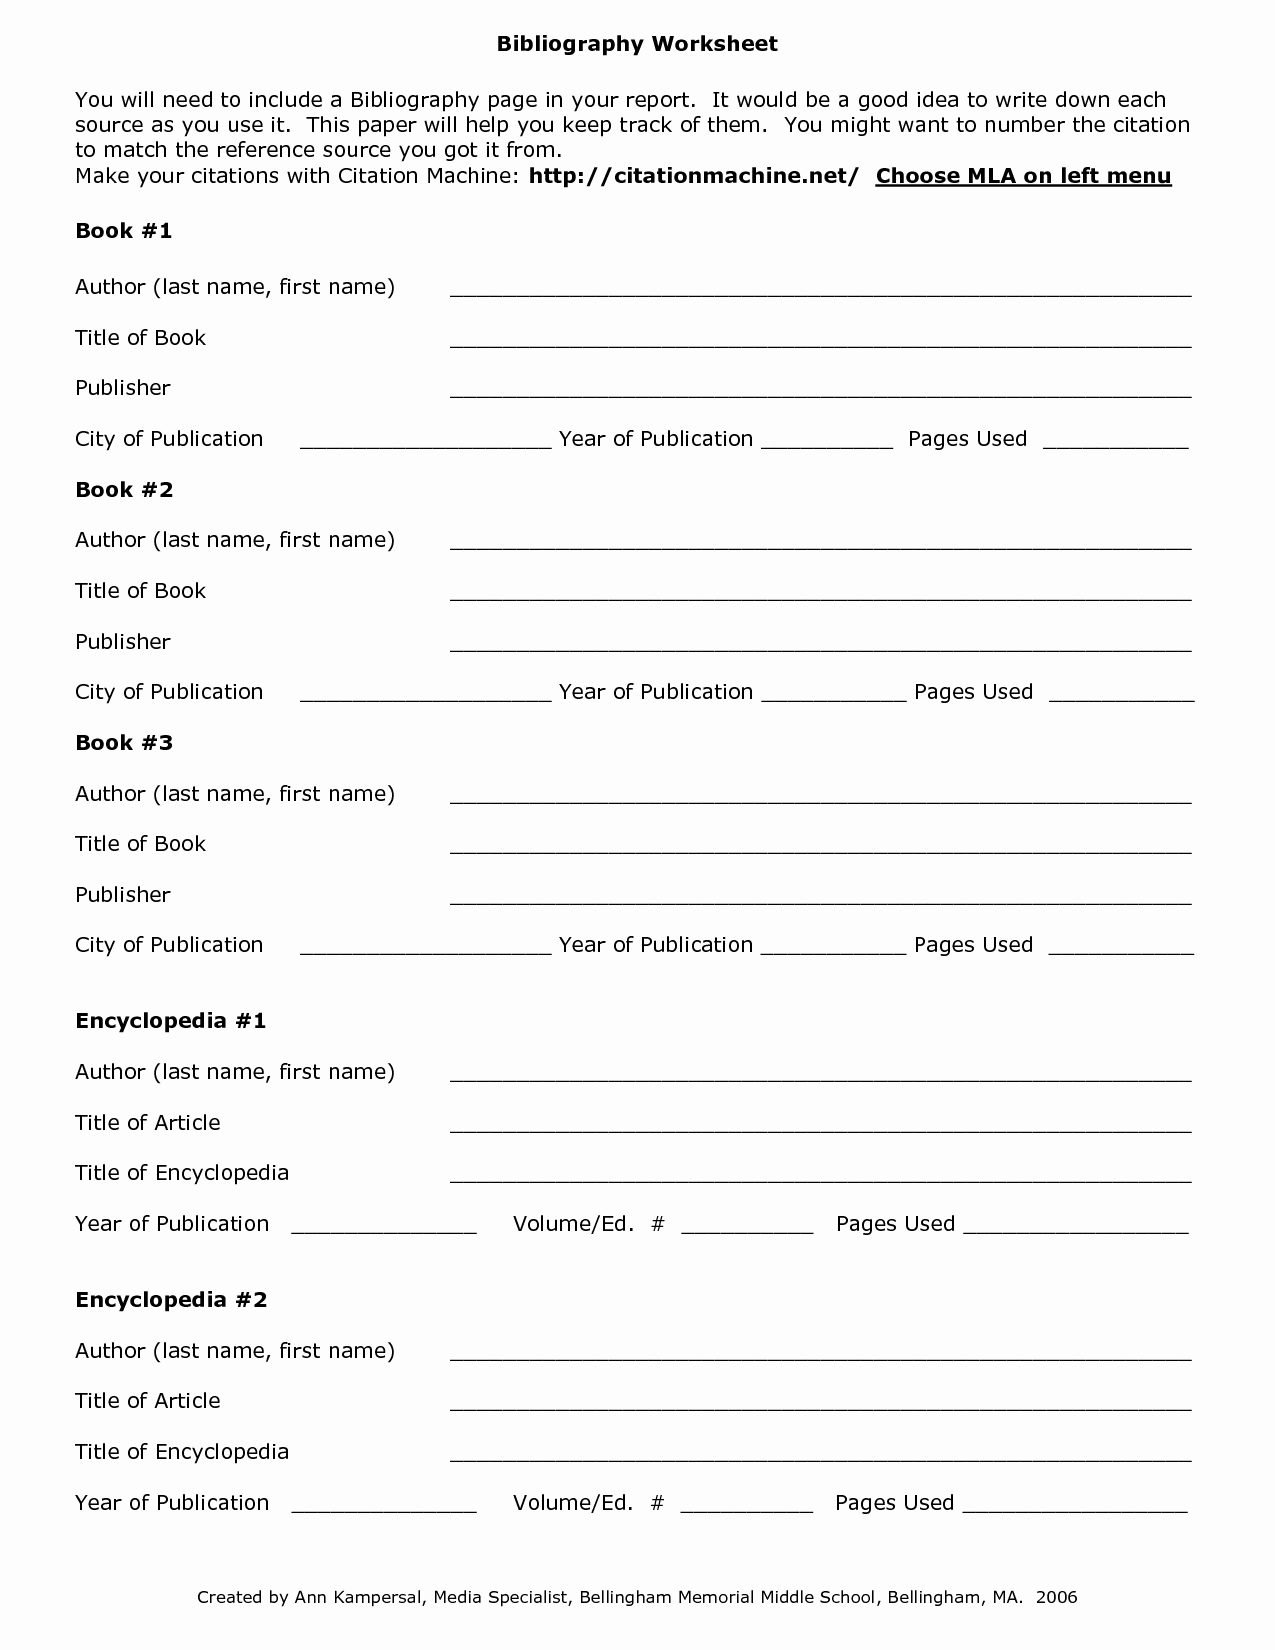 Bibliography Practice Worksheets Lovely Other Worksheet Category Page 1050 Worksheeto